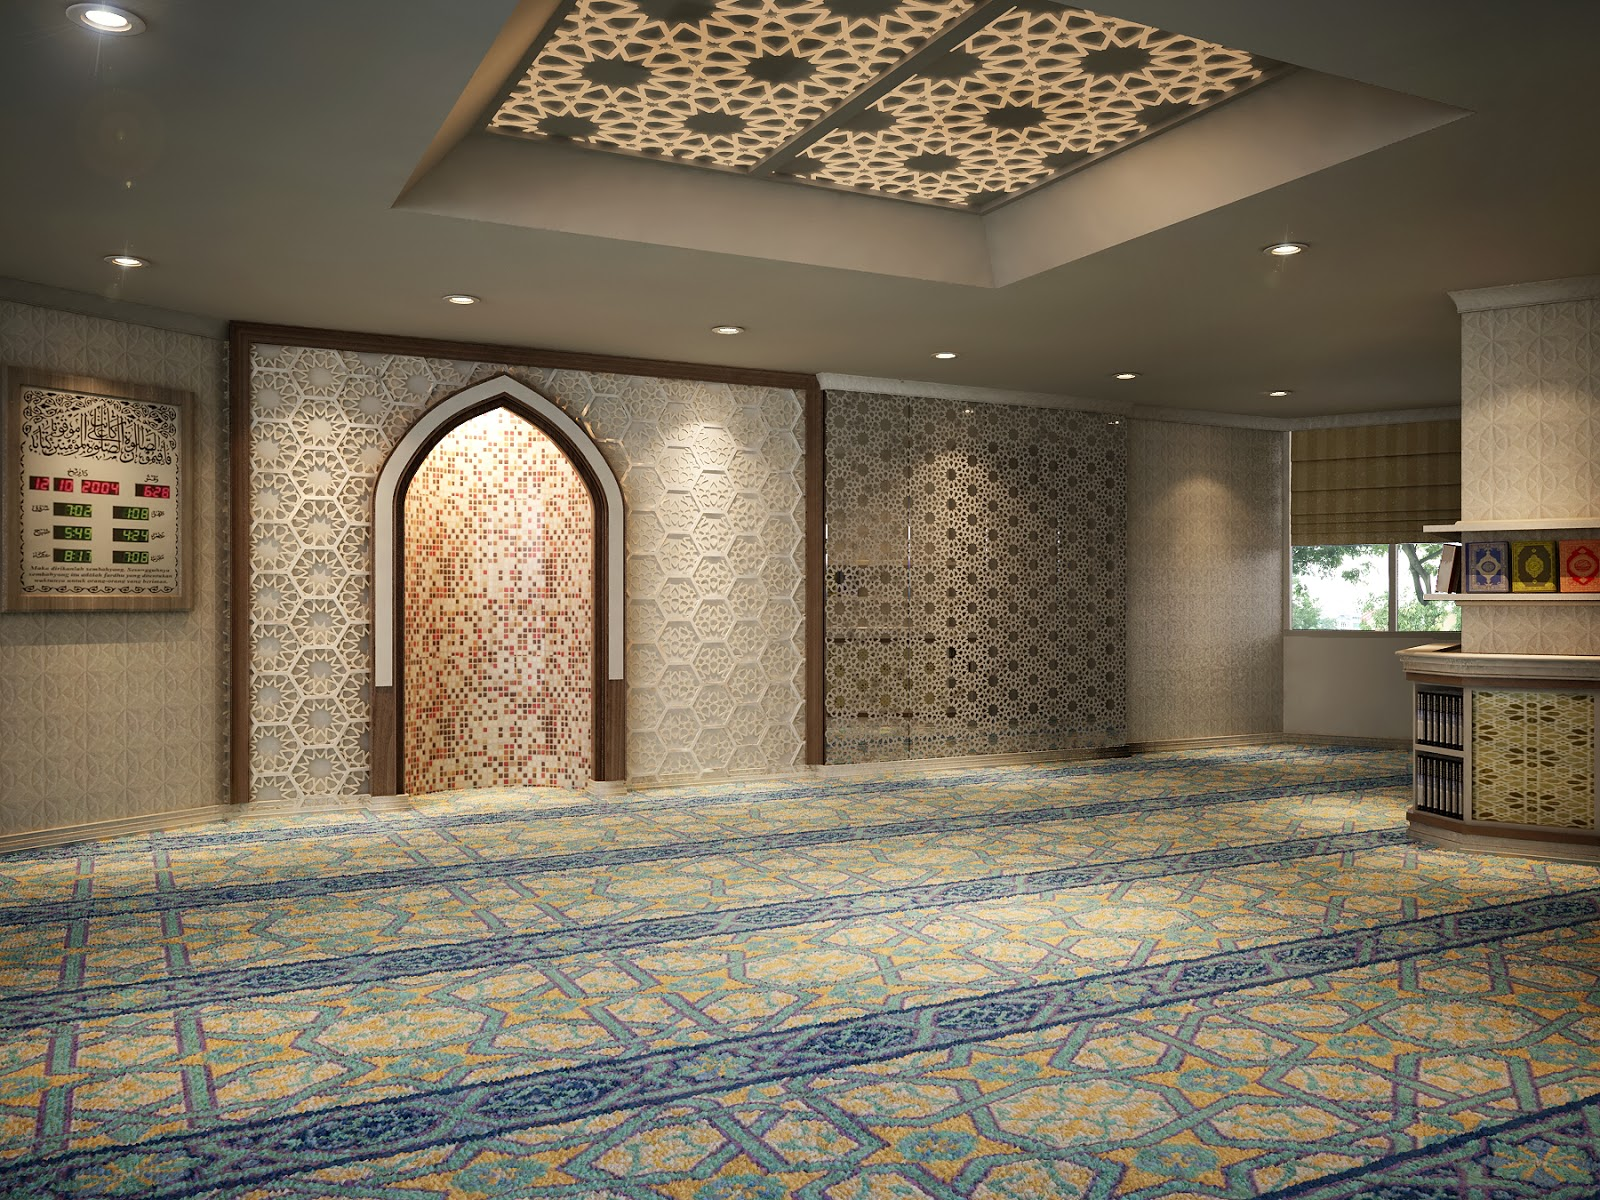 Delightful Pin By Irfan Adam On Surau | Pinterest | Mosque, Prayer Room And Islamic Part 28